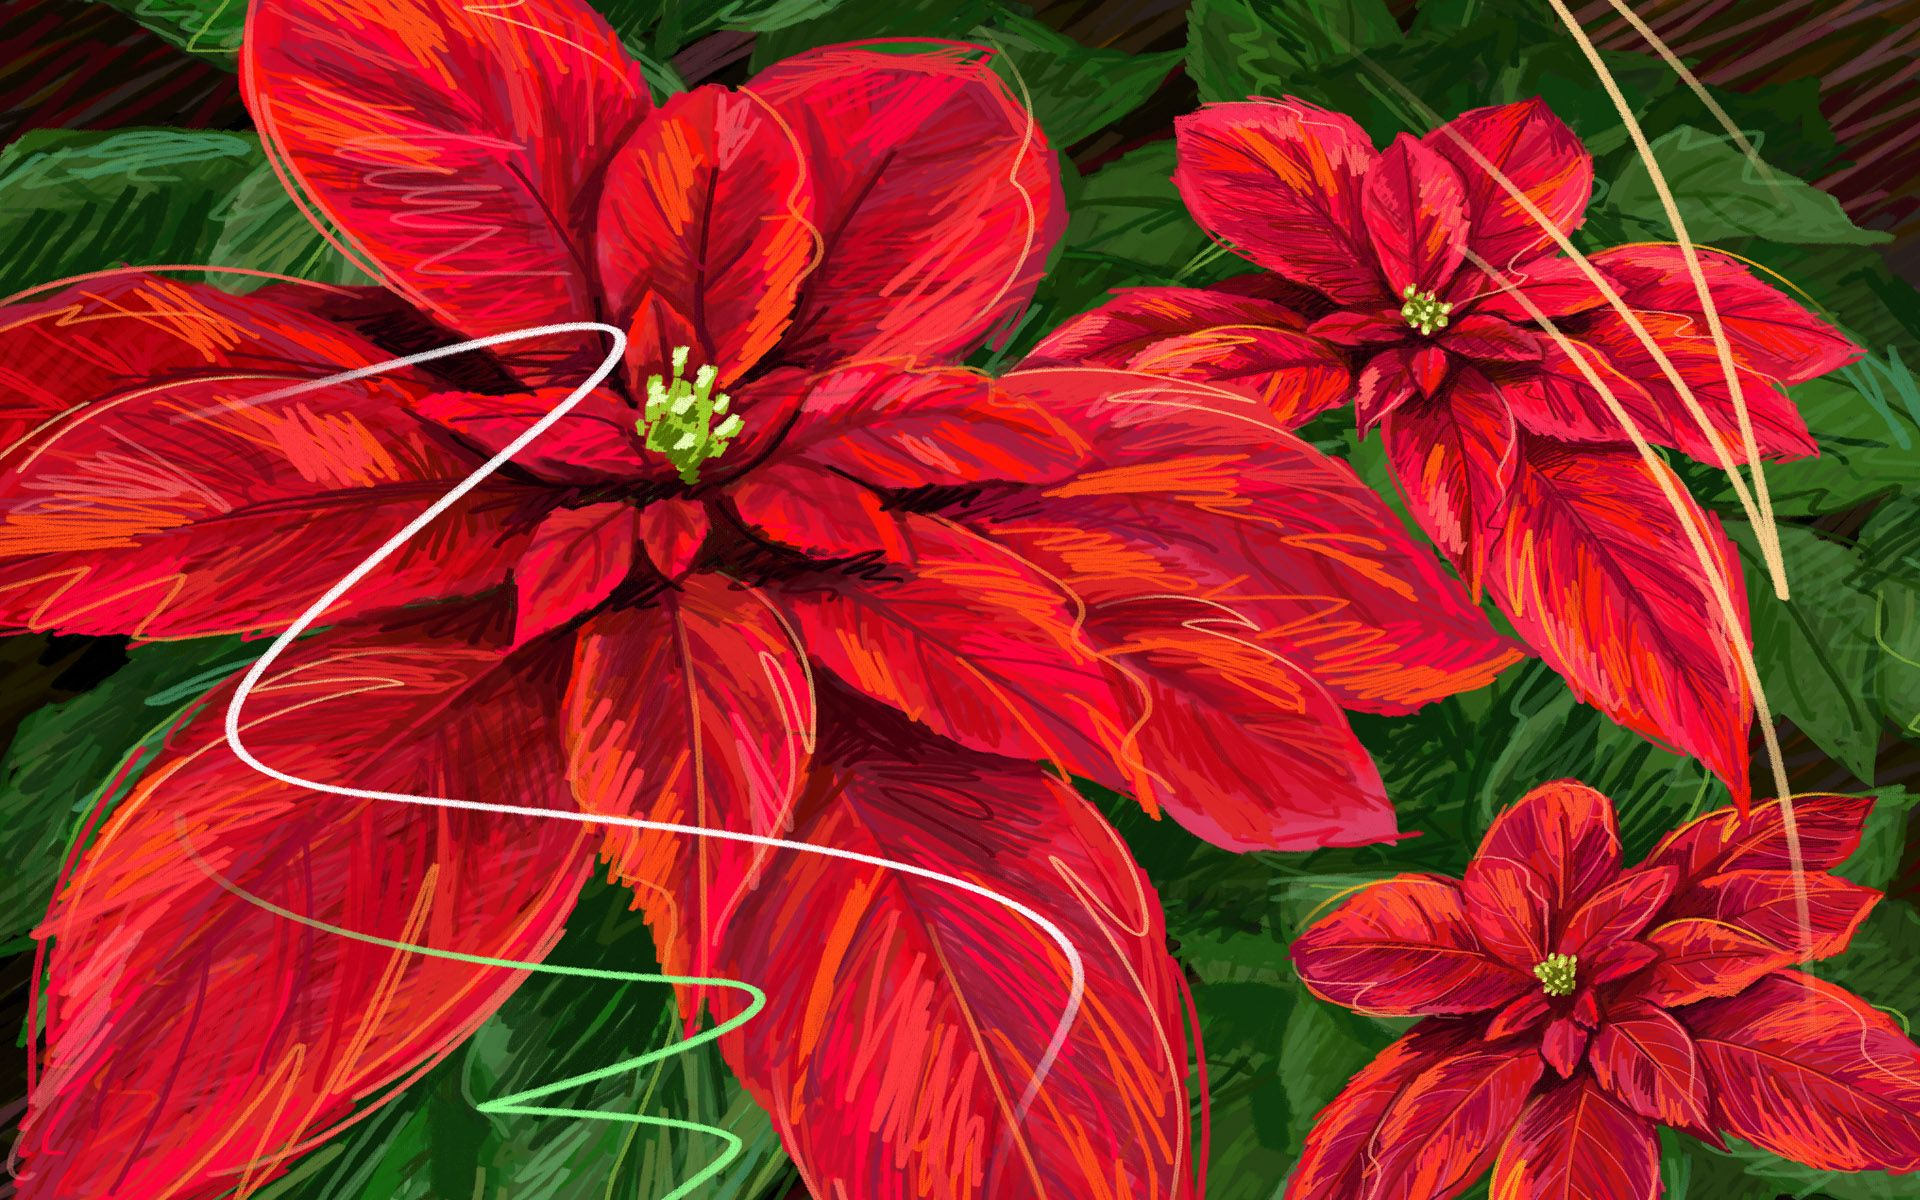 1920x1200 Flower Hd Wallpaper - Christmas Wallpaper With Flowers, Hd ...